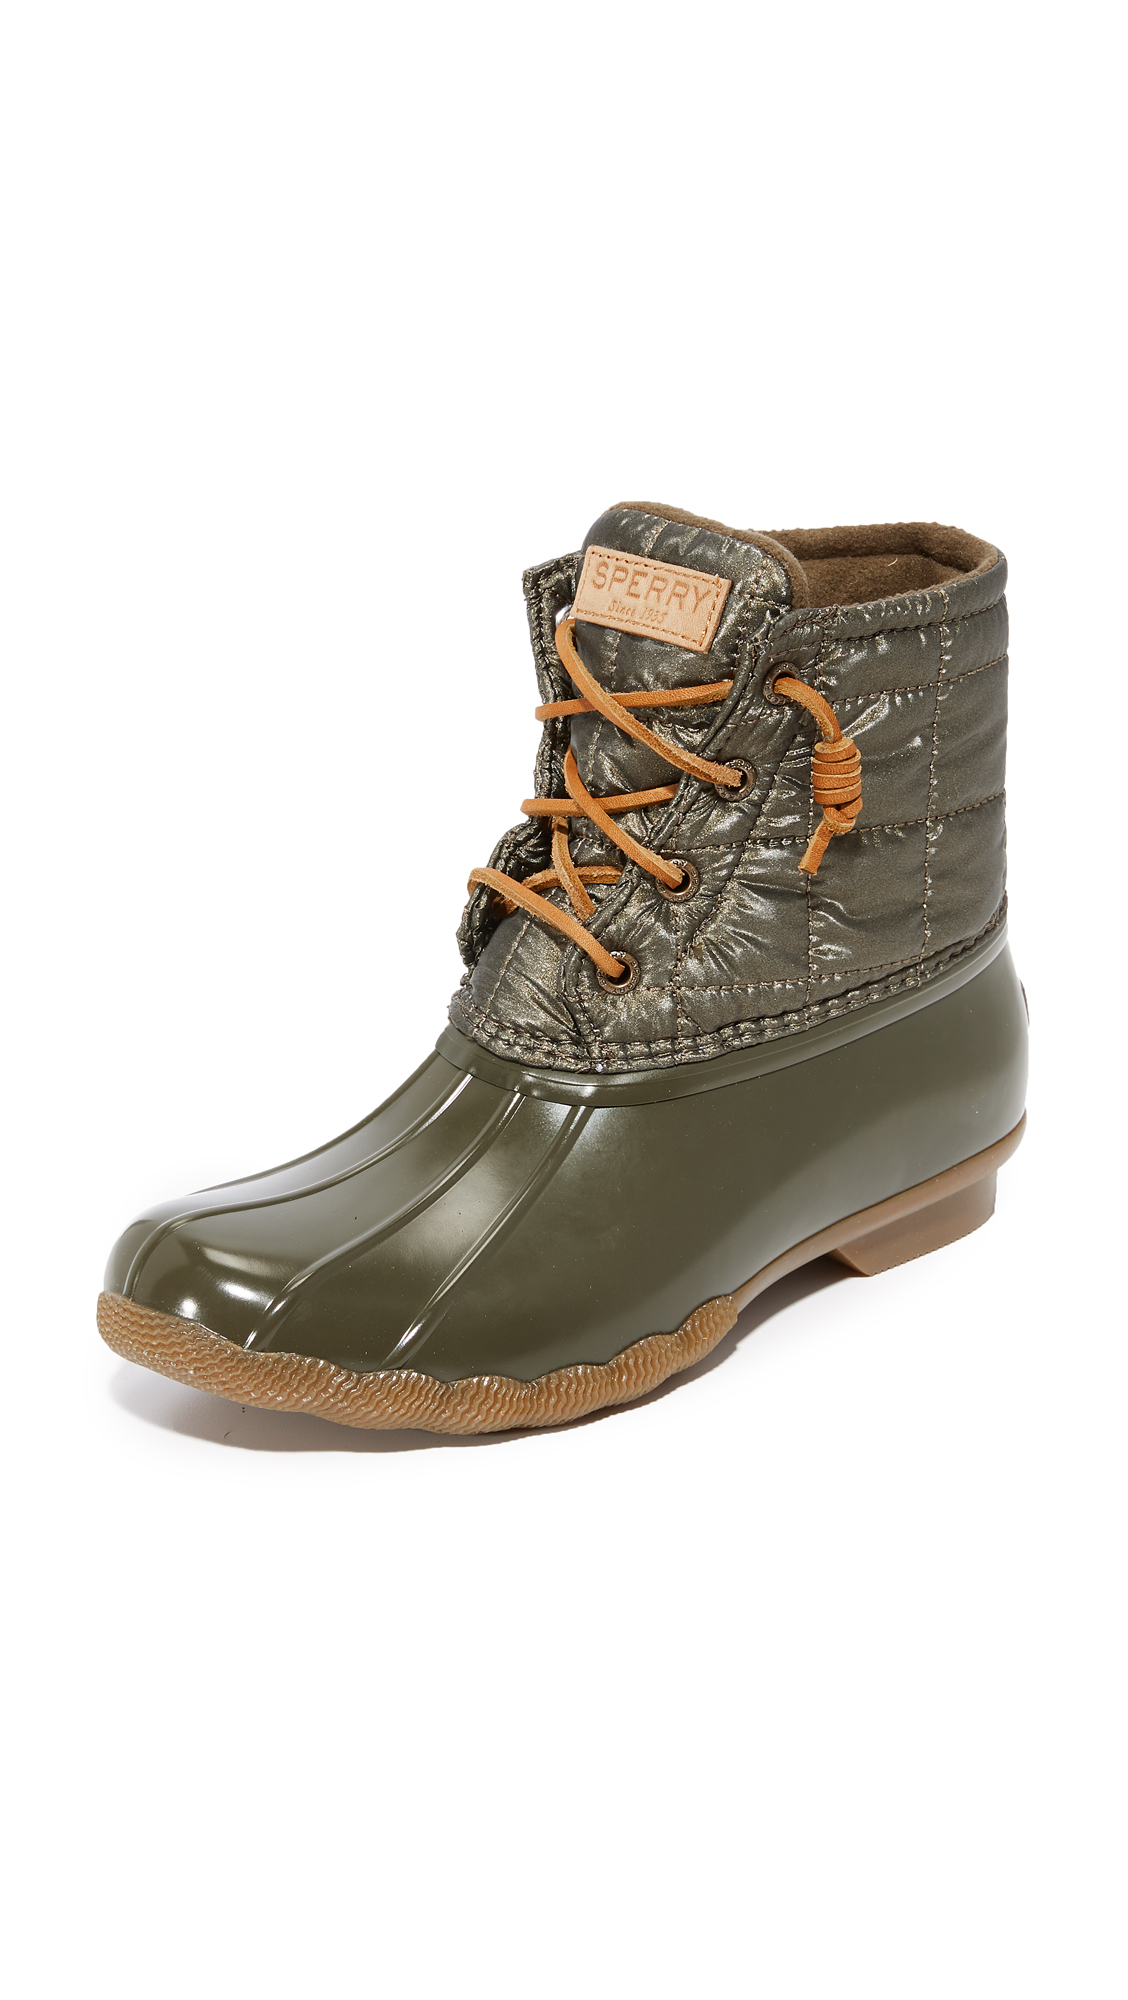 Sperry Saltwater Shiny Quilted Booties - Dark Olive